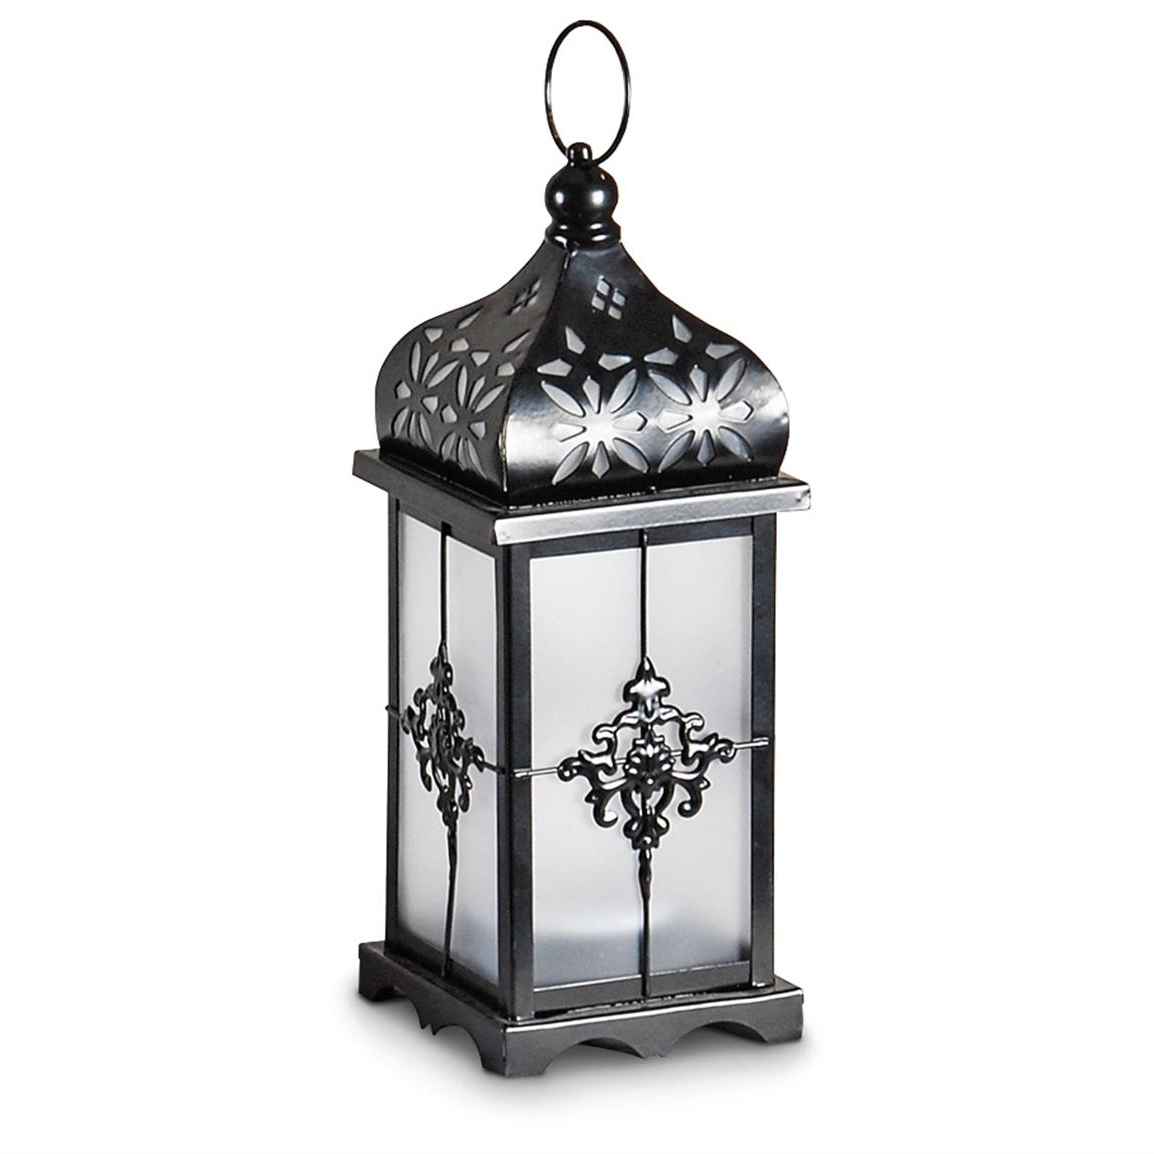 Outdoor Decorative Lanterns For Popular 2 Filigree Solar Lanterns – 232102, Solar & Outdoor Lighting At (View 19 of 20)